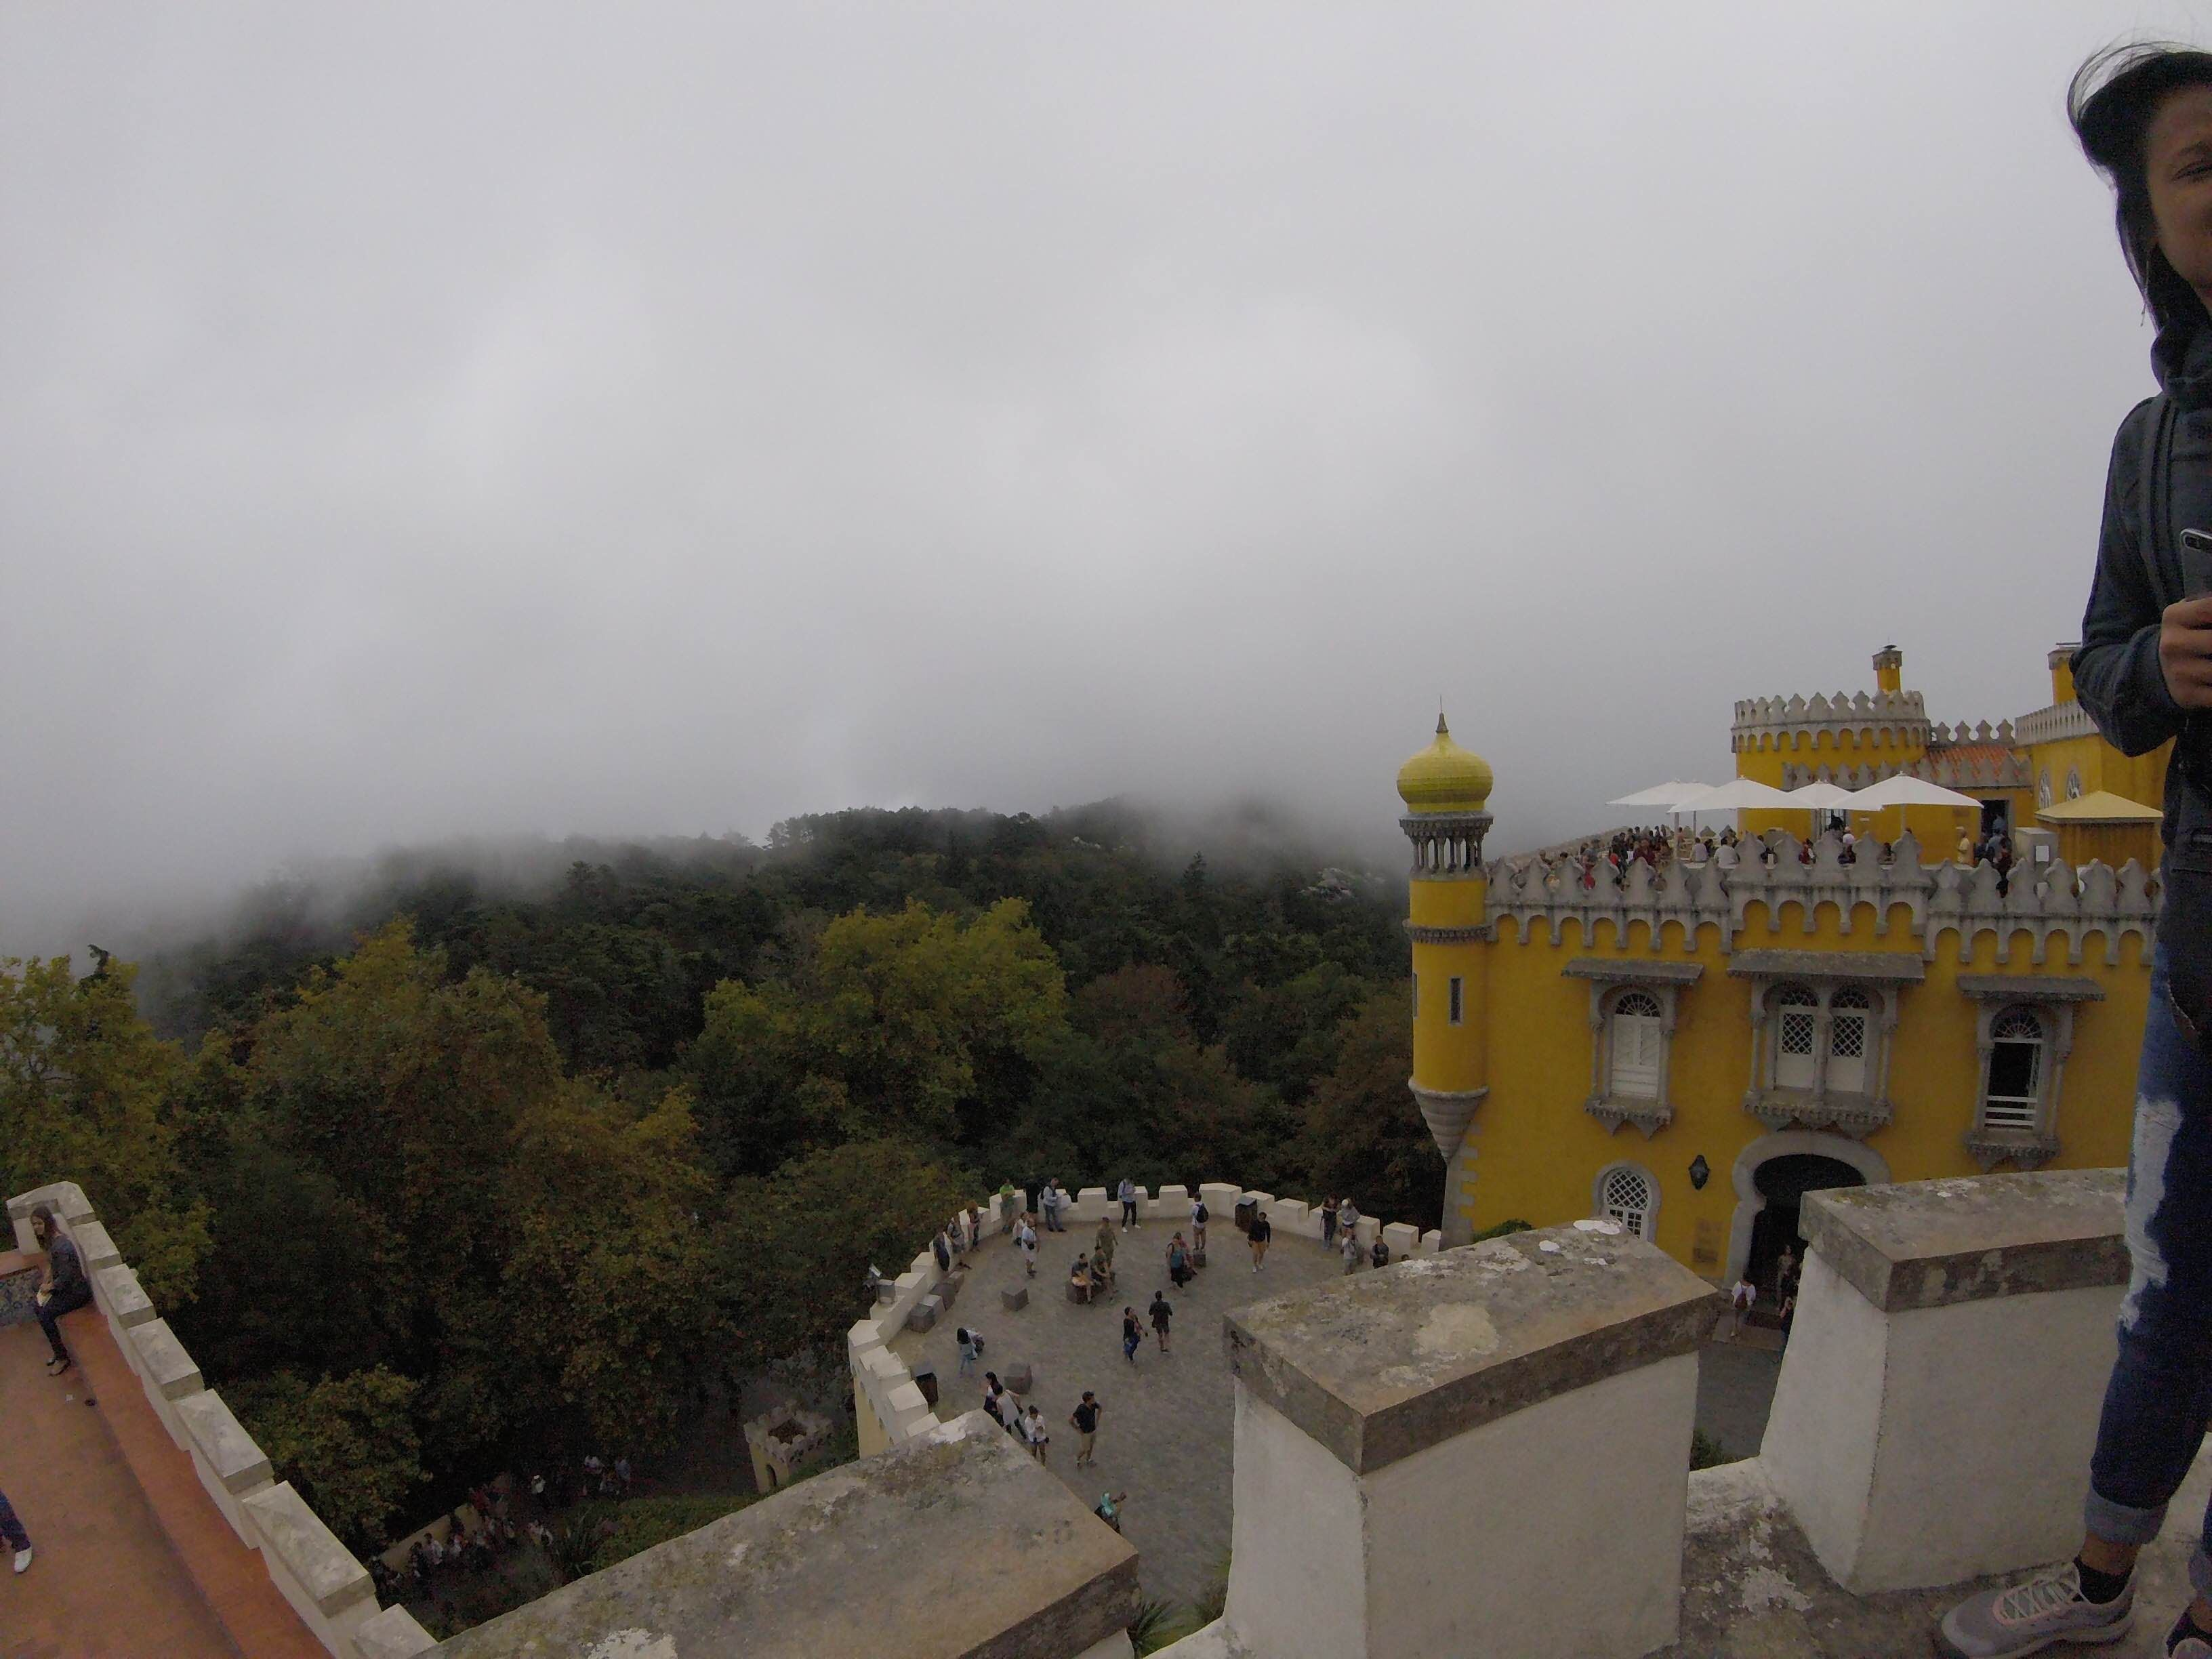 Cloud in Pena National Palace